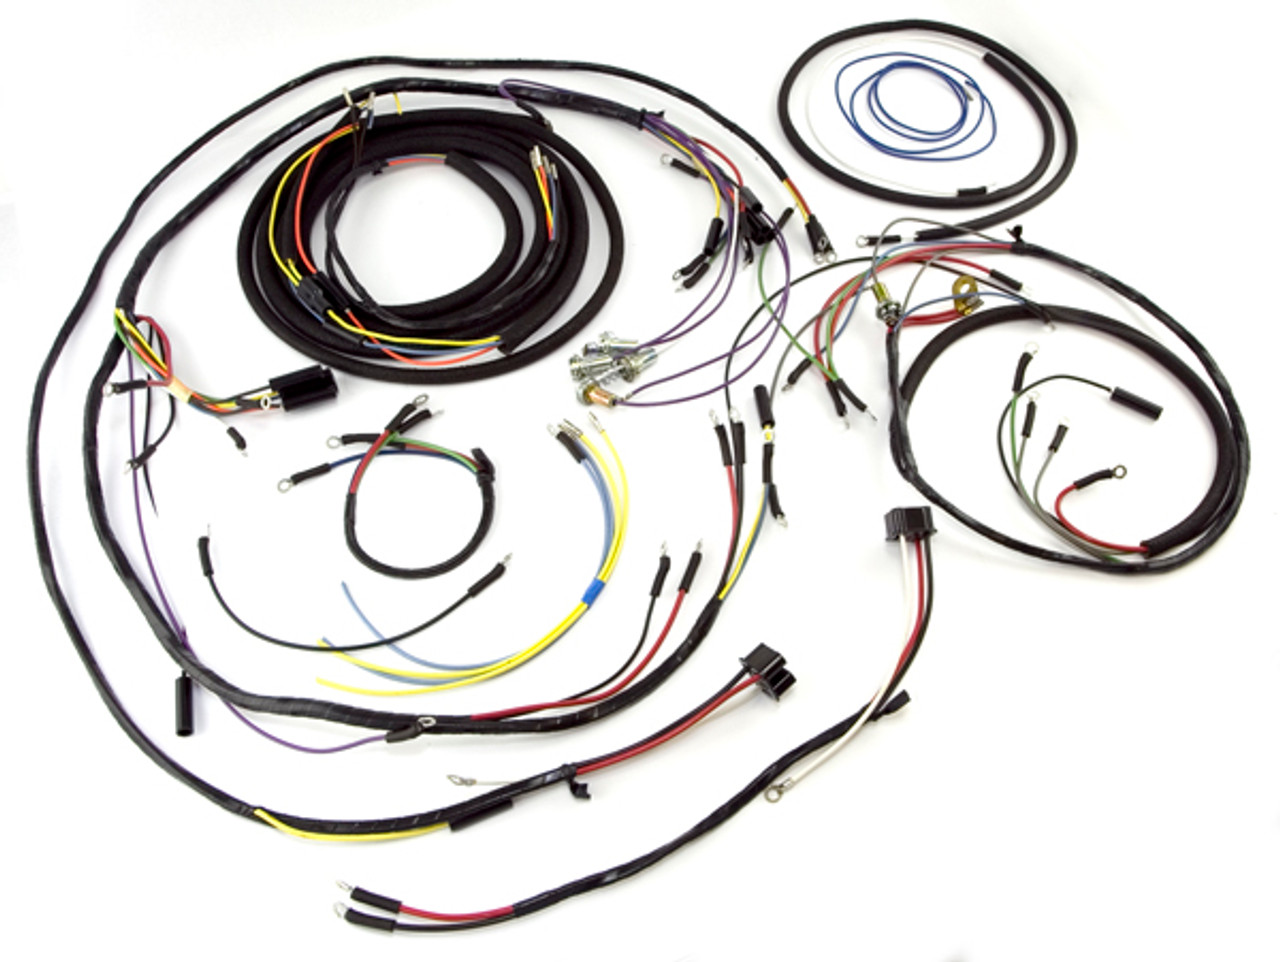 Omix-Ada, 17201.08 - Wiring Harness, 57-64 Willys CJ3B - Available at the  JeepHut   Cj3b Wiring Harness      JeepHut